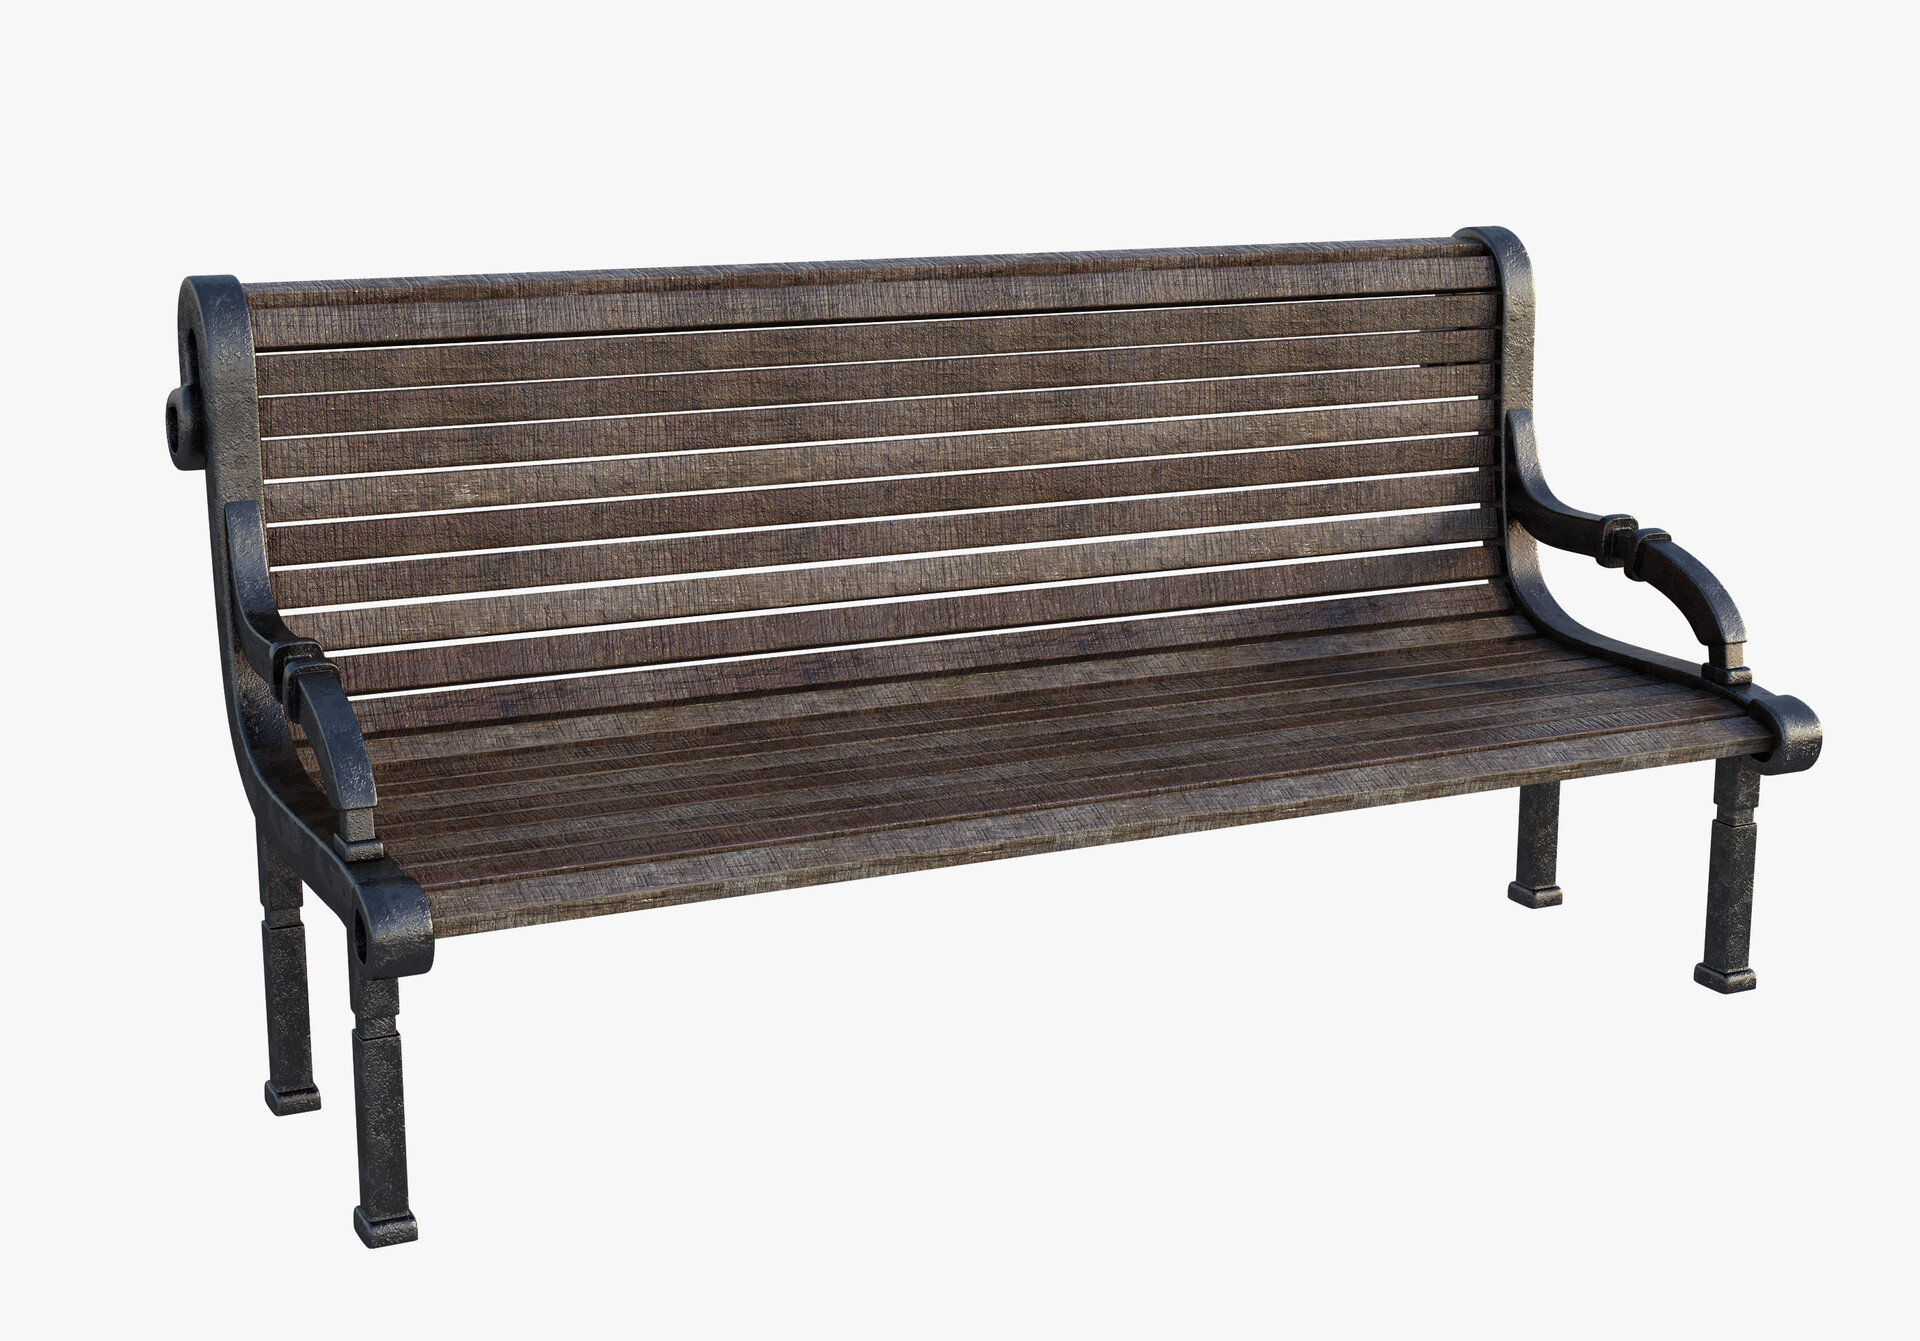 Marc mons bench1